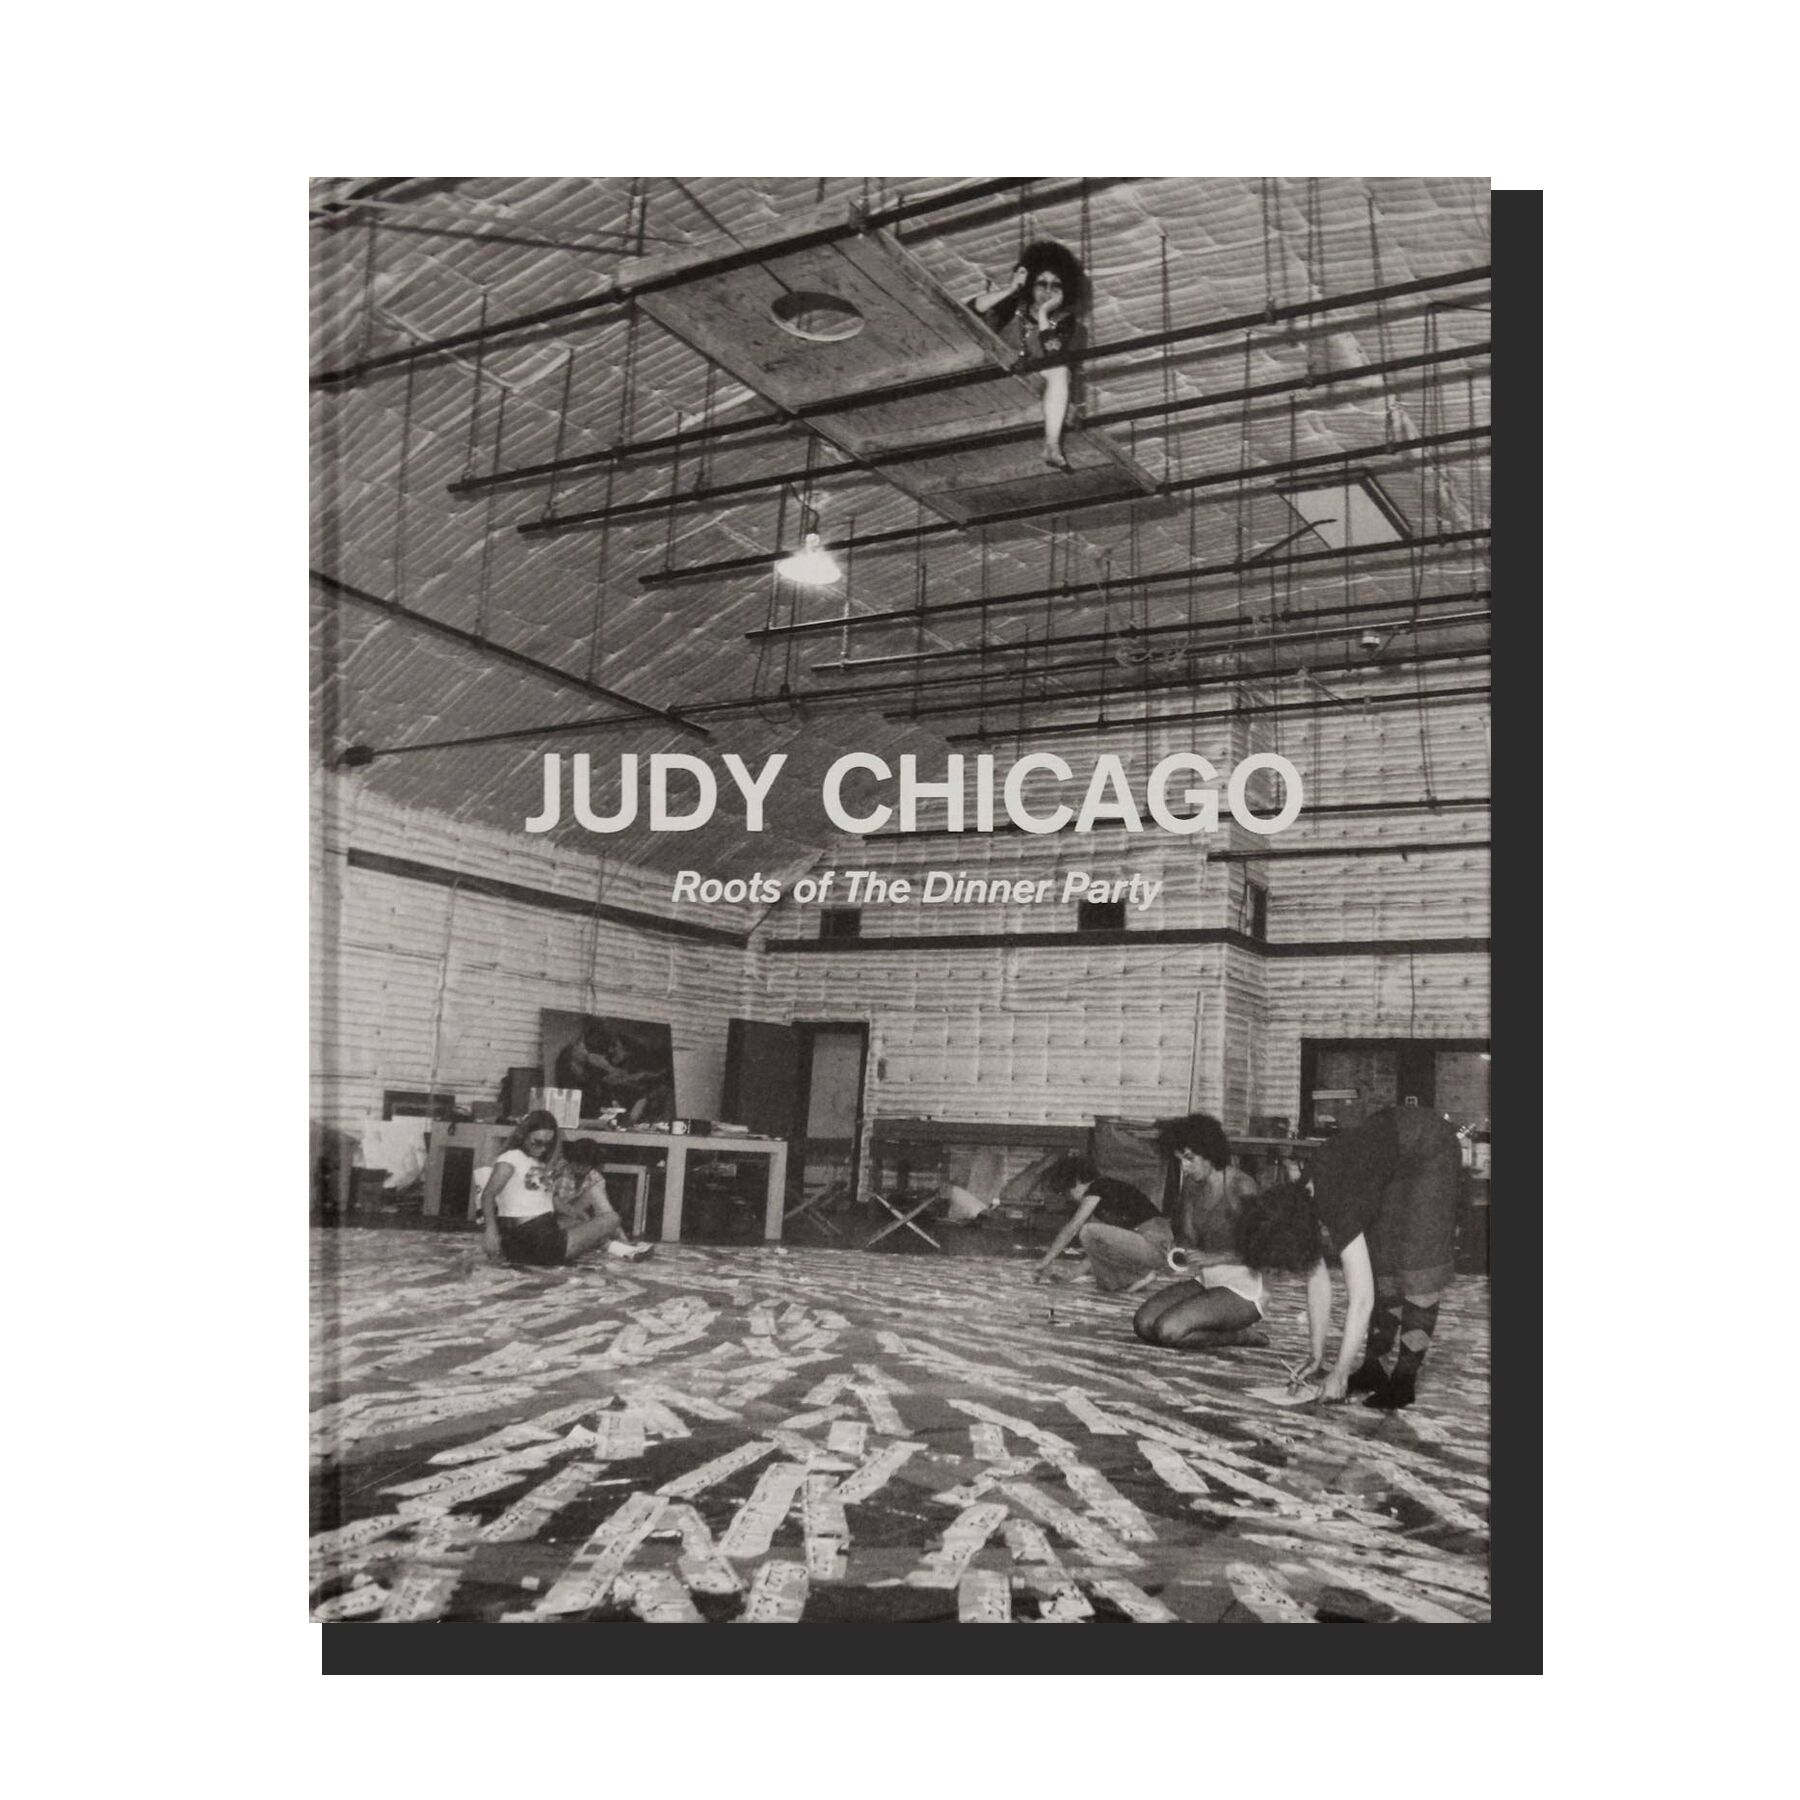 Judy Chicago: Roots of the Dinner Party: History in the Making